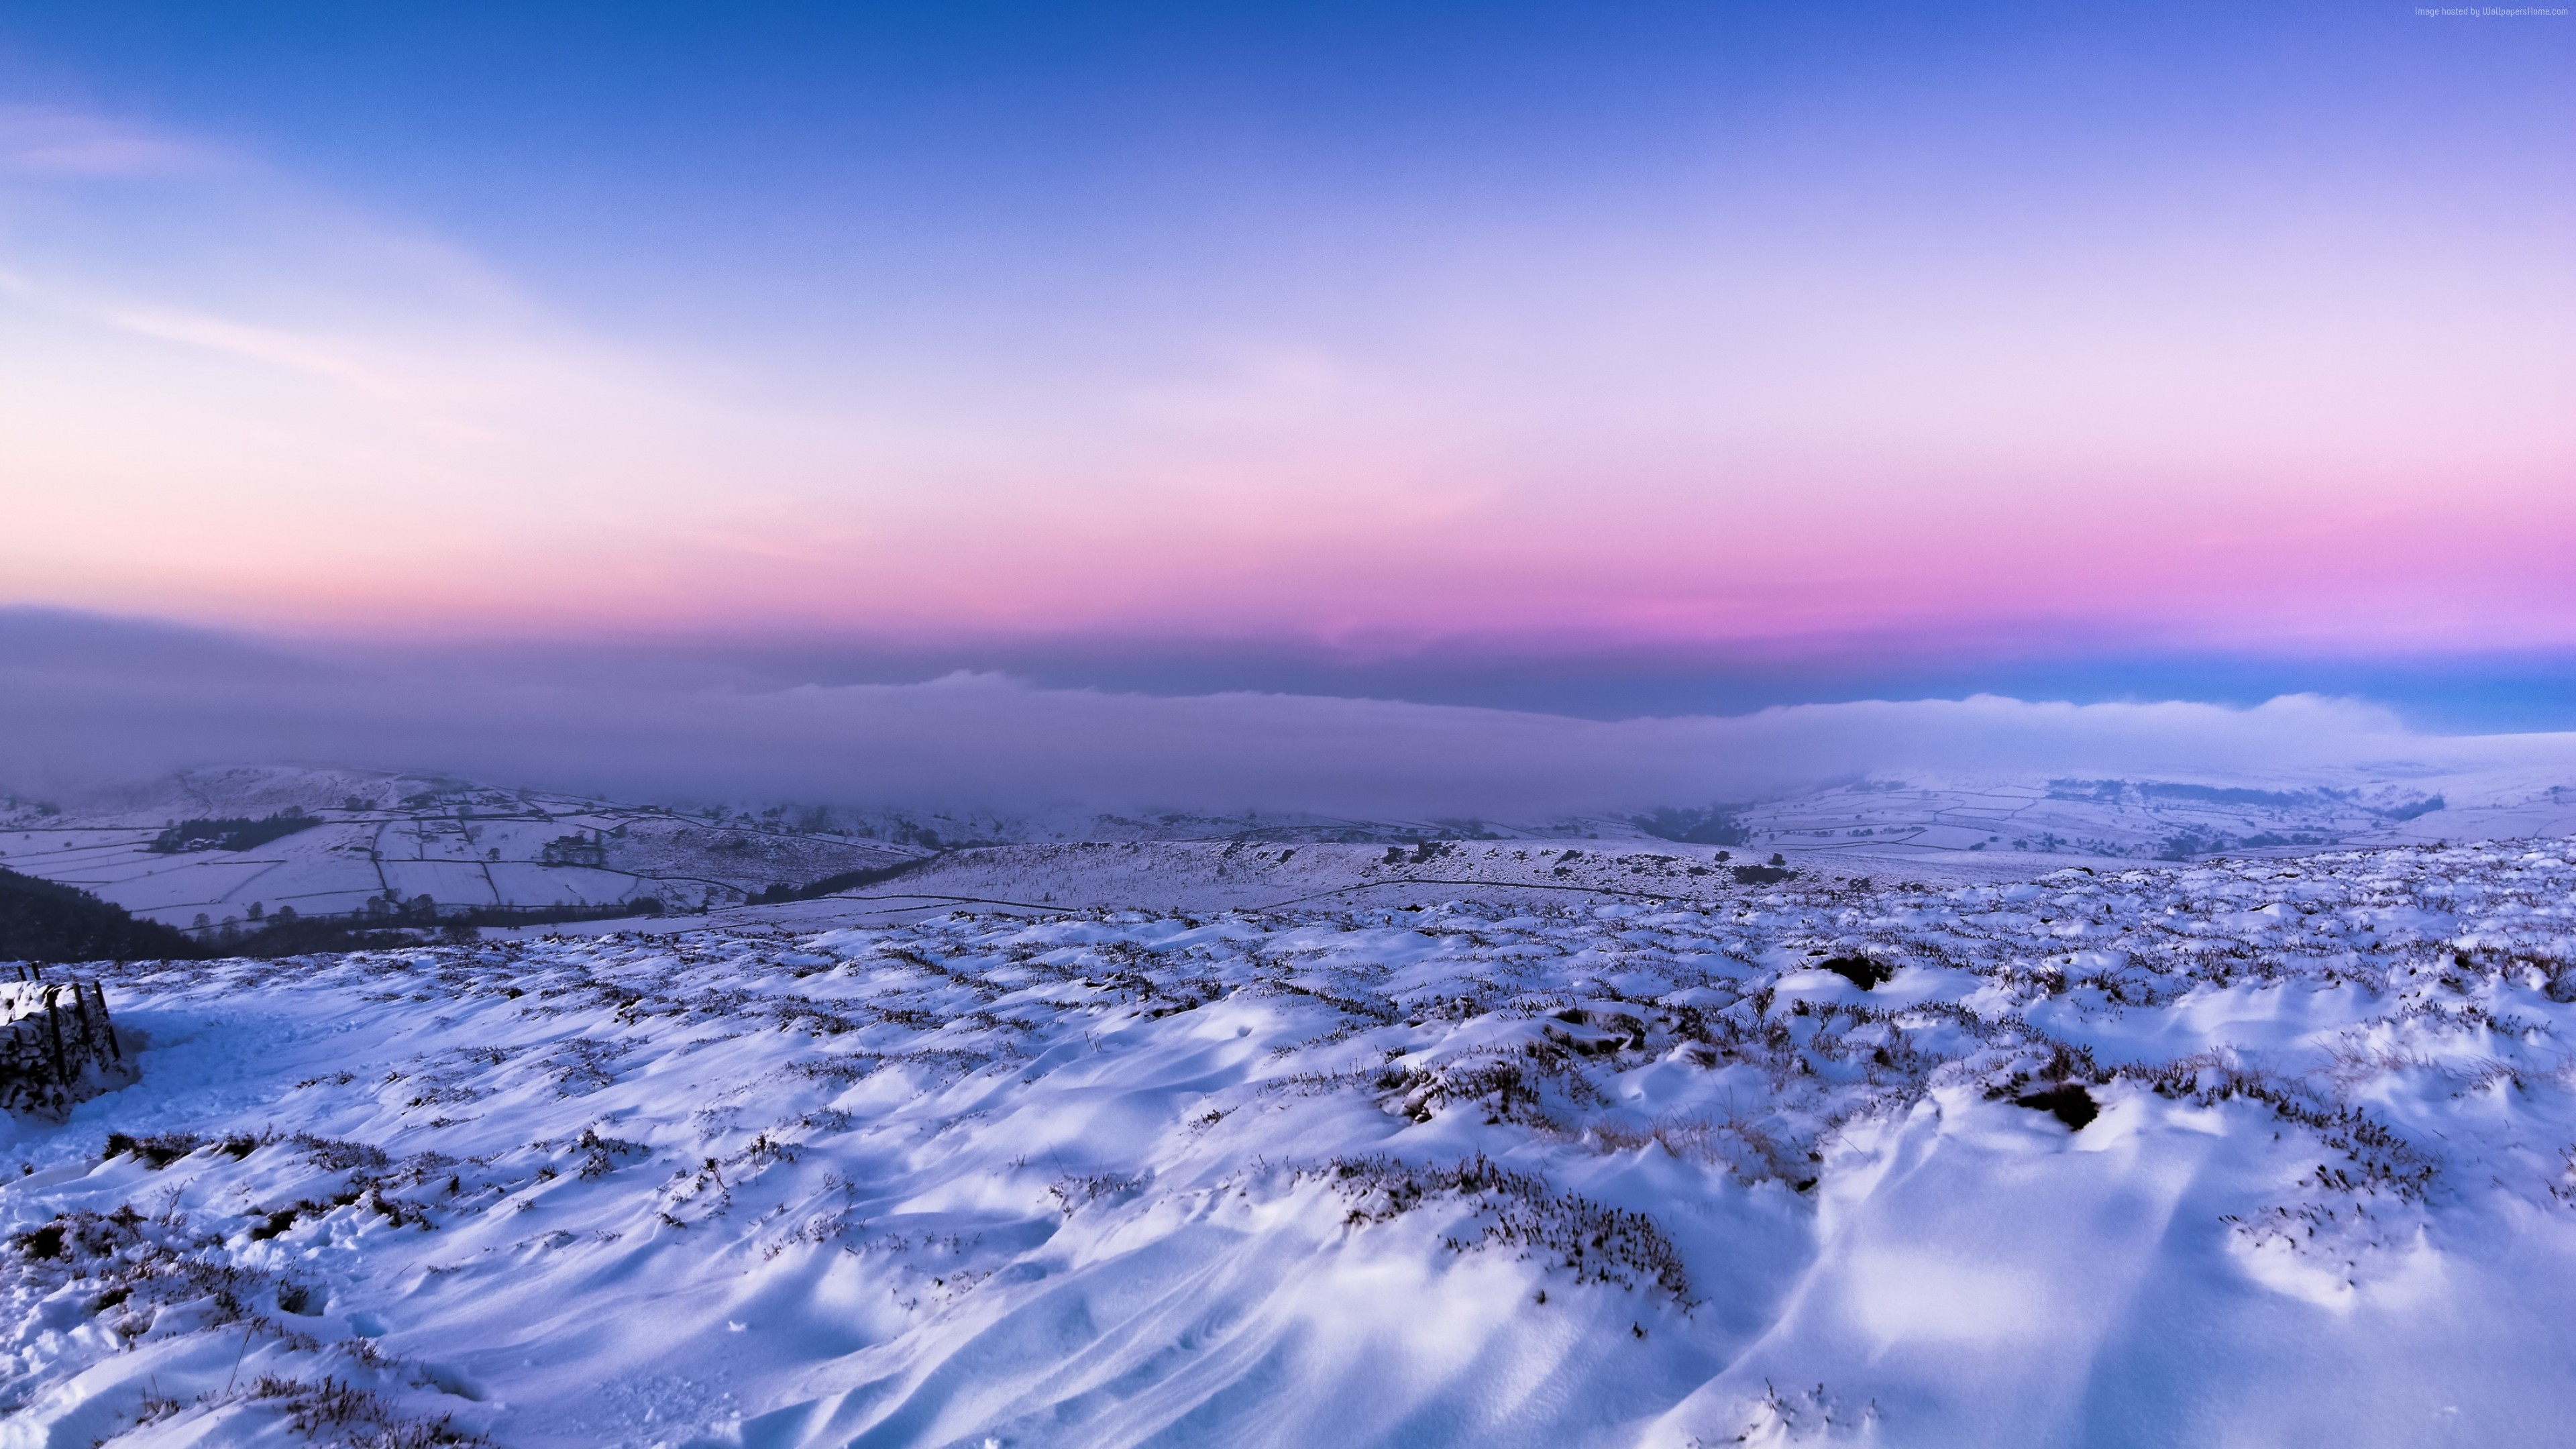 Wallpaper Field Snow Winter 4k Nature Wallpaper Download High Resolution 4k Wallpaper